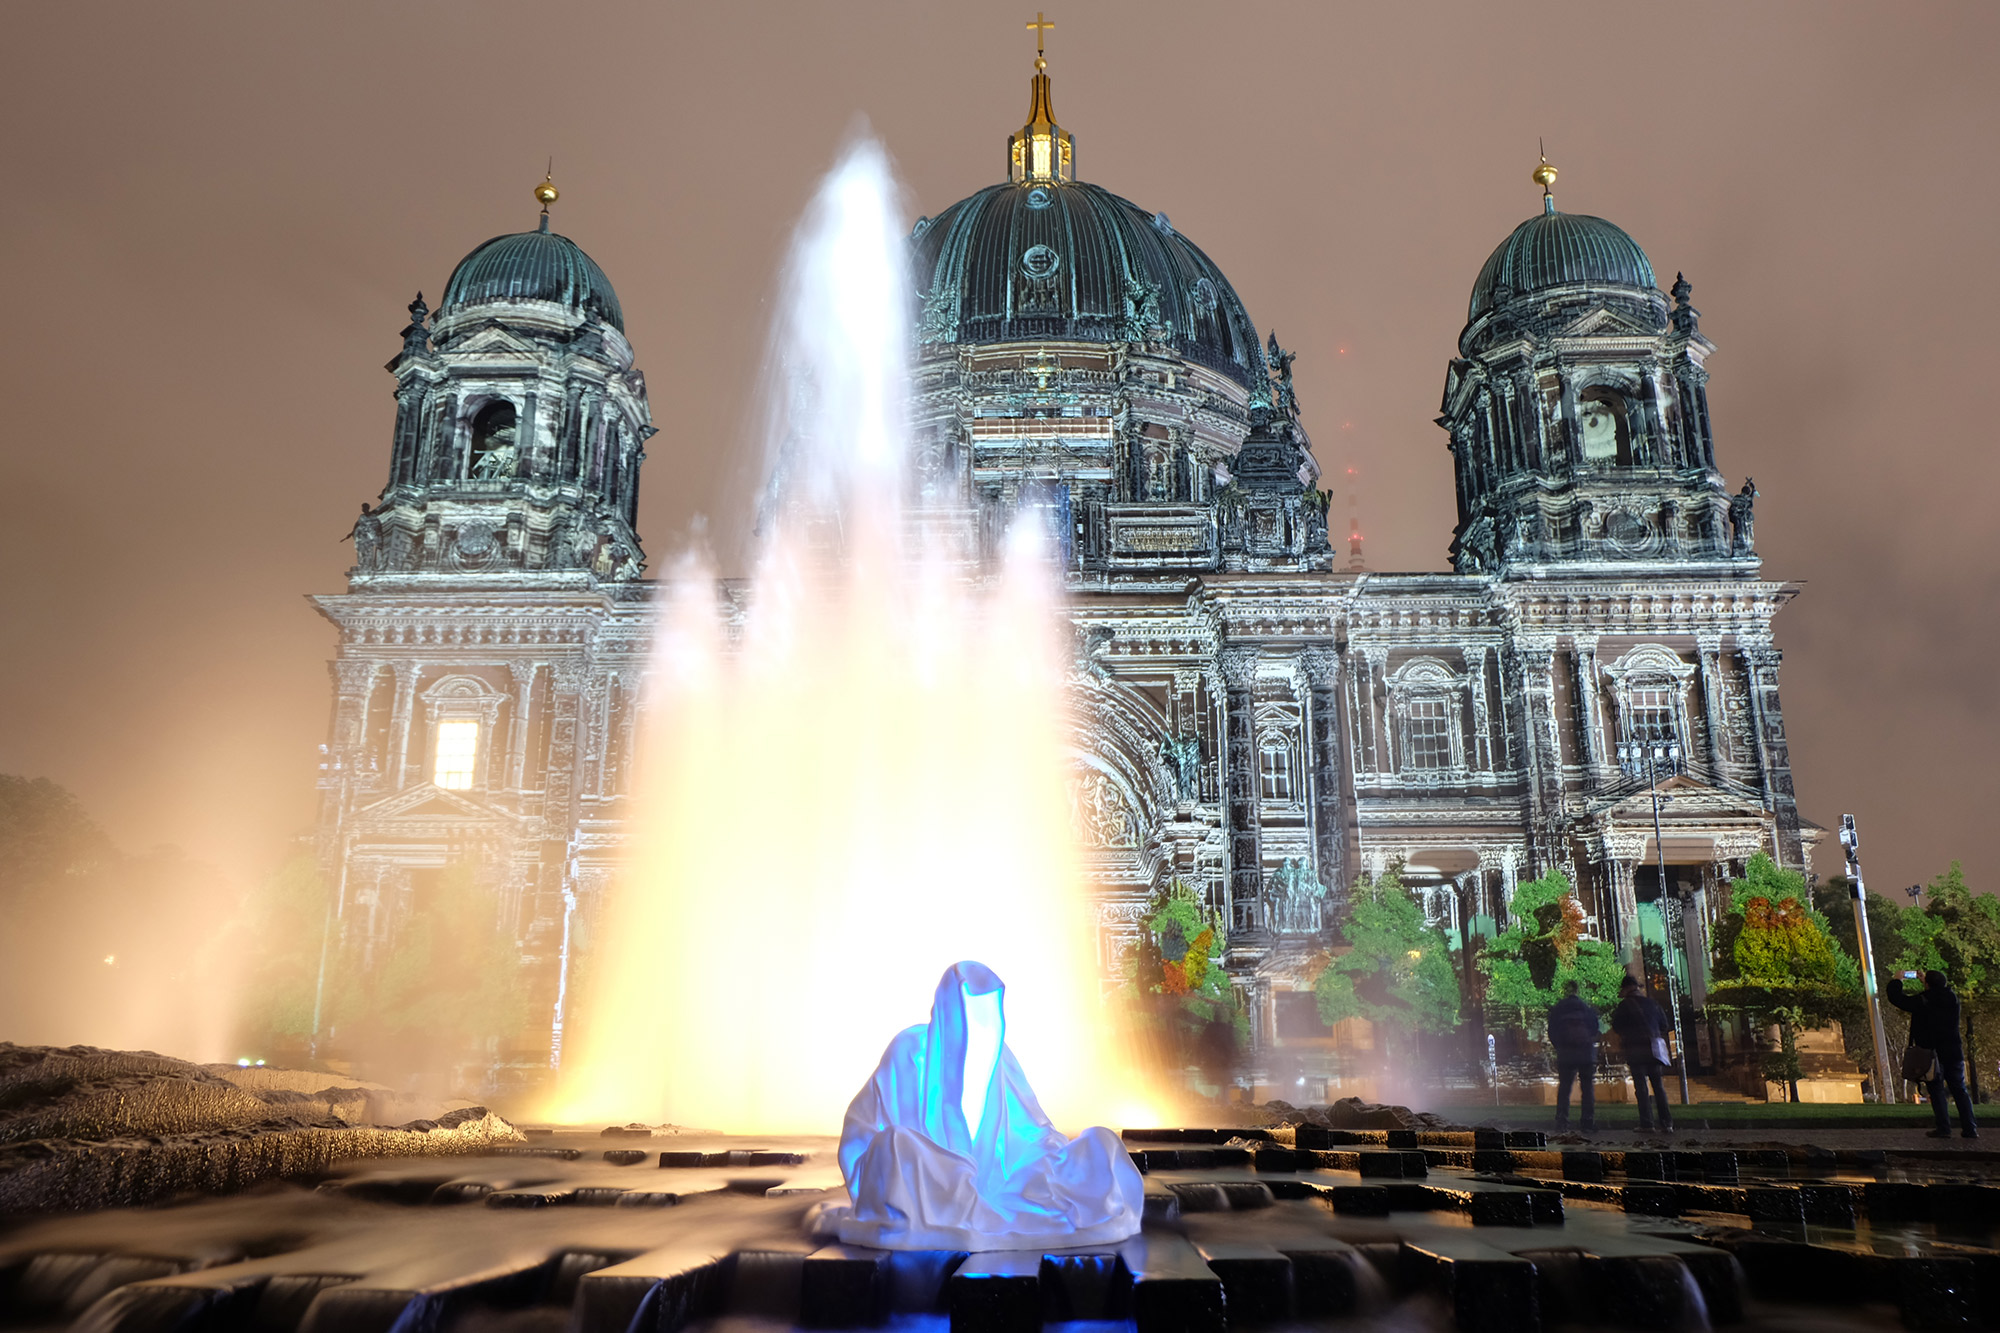 festival-of-lights-berlin-guardians-of-time-manfred-kielnhofer-lumina-light-contemporary-art-design-statue-sculpture-fineart-ghost-faceless-no-face-9313